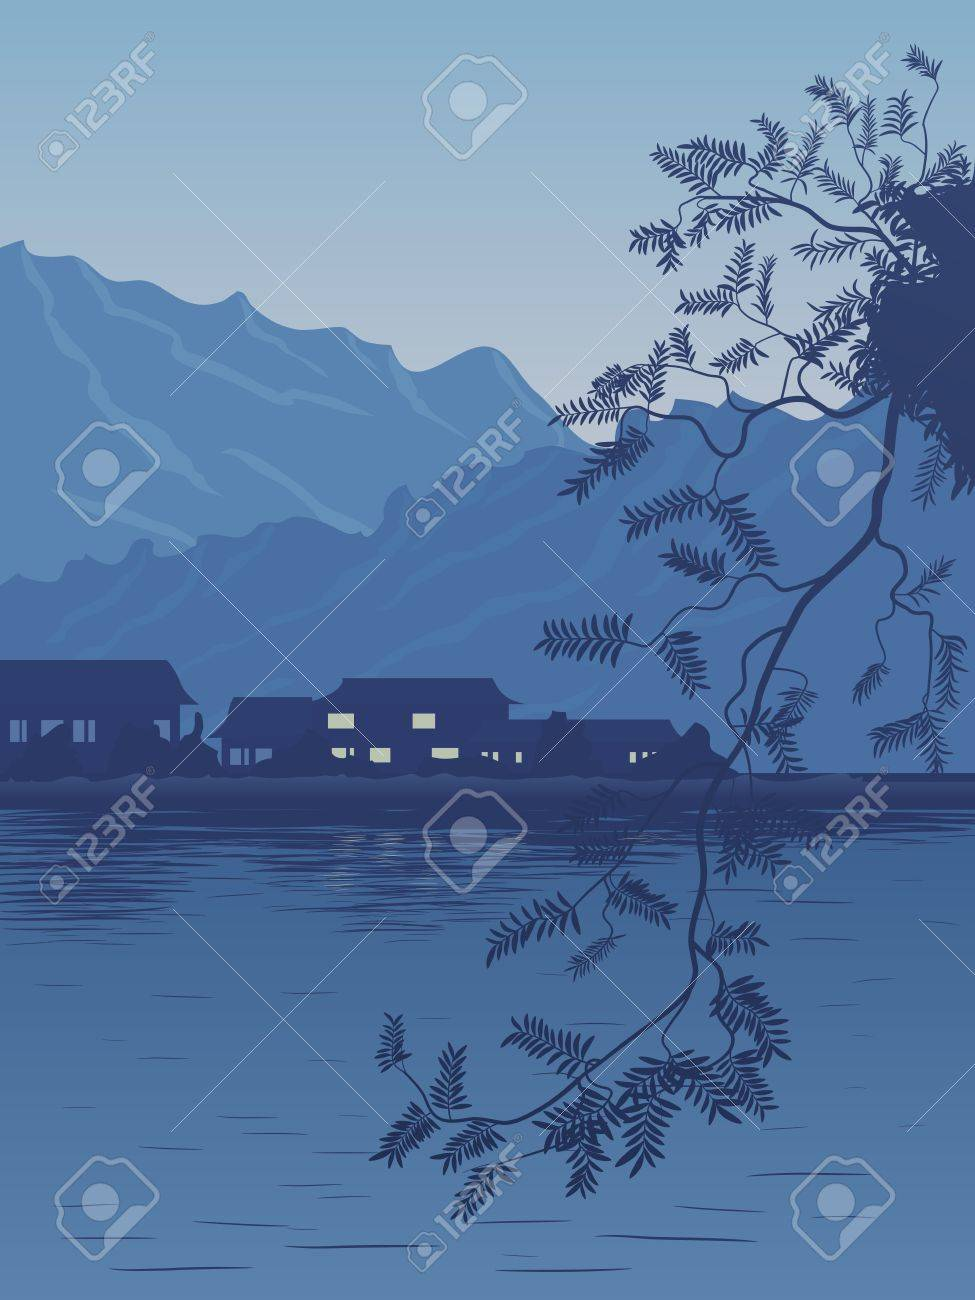 Vector illustration of village on the bank of lake in the evening in dark blue tone with the Asian motive. Stock Vector - 16170028